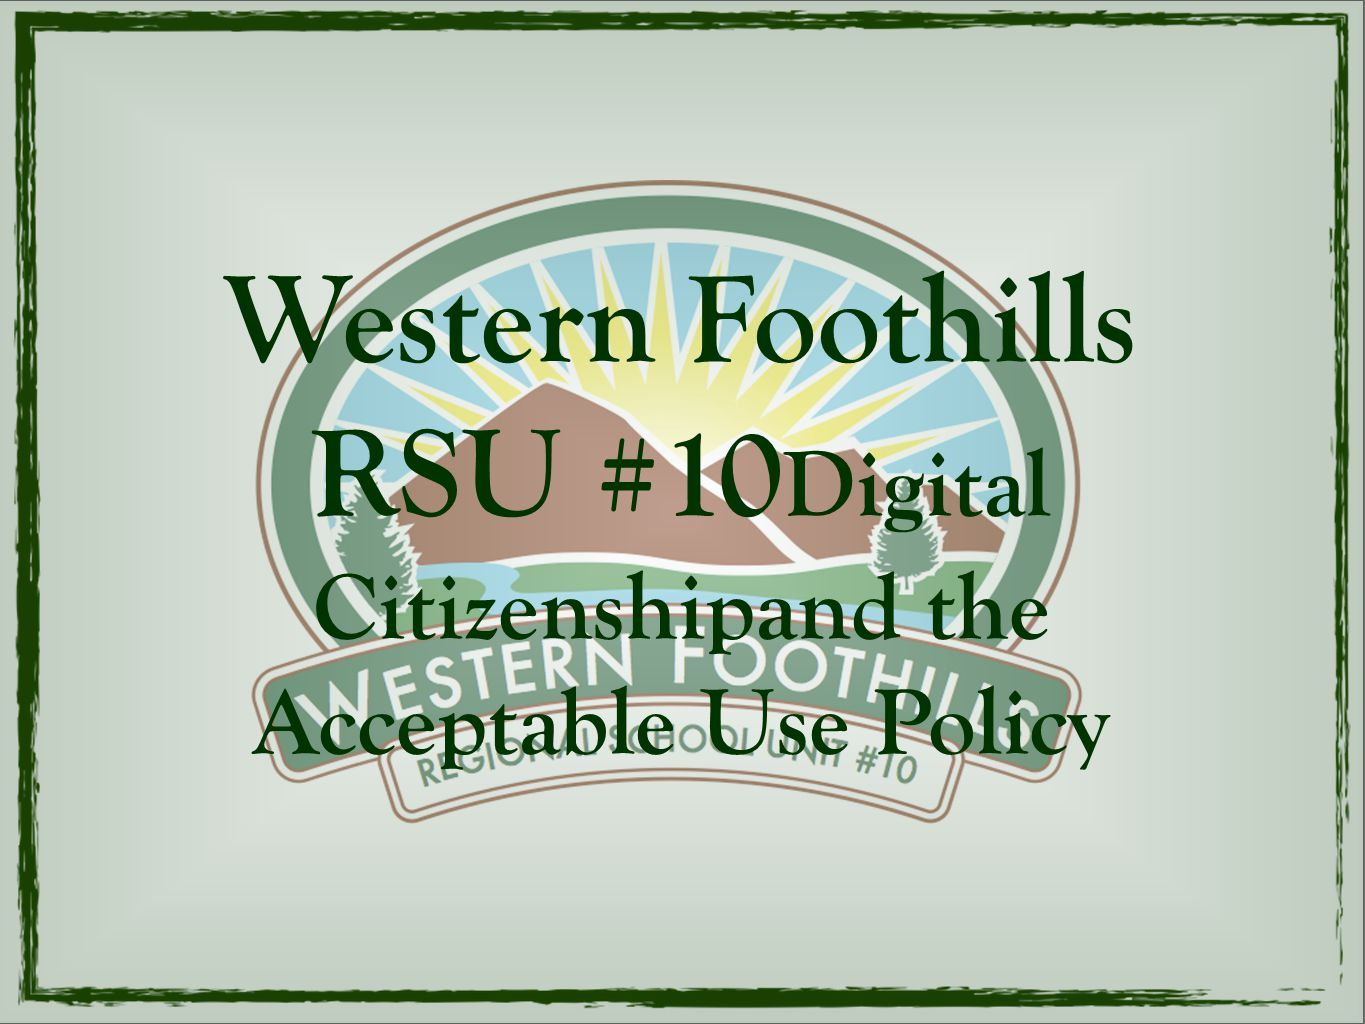 Western Foothills RSU #10 Digital Citizenshipand the Acceptable Use Policy